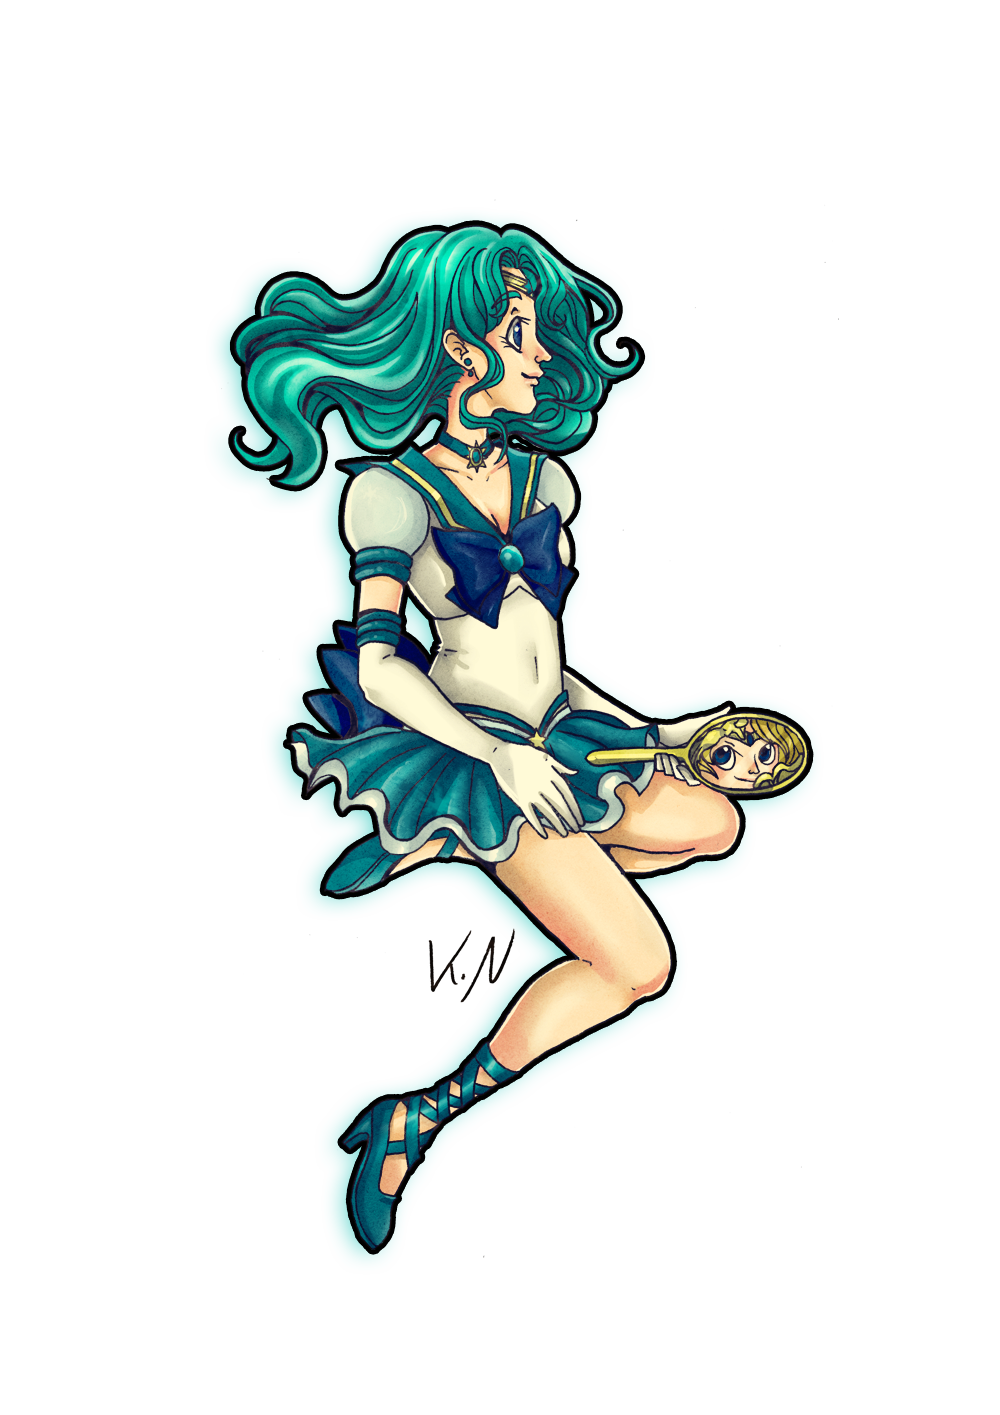 30 days of what inspires me day 1 sailor neptune by kaos felida 30 days of what inspires me day 1 sailor neptune by kaos felida